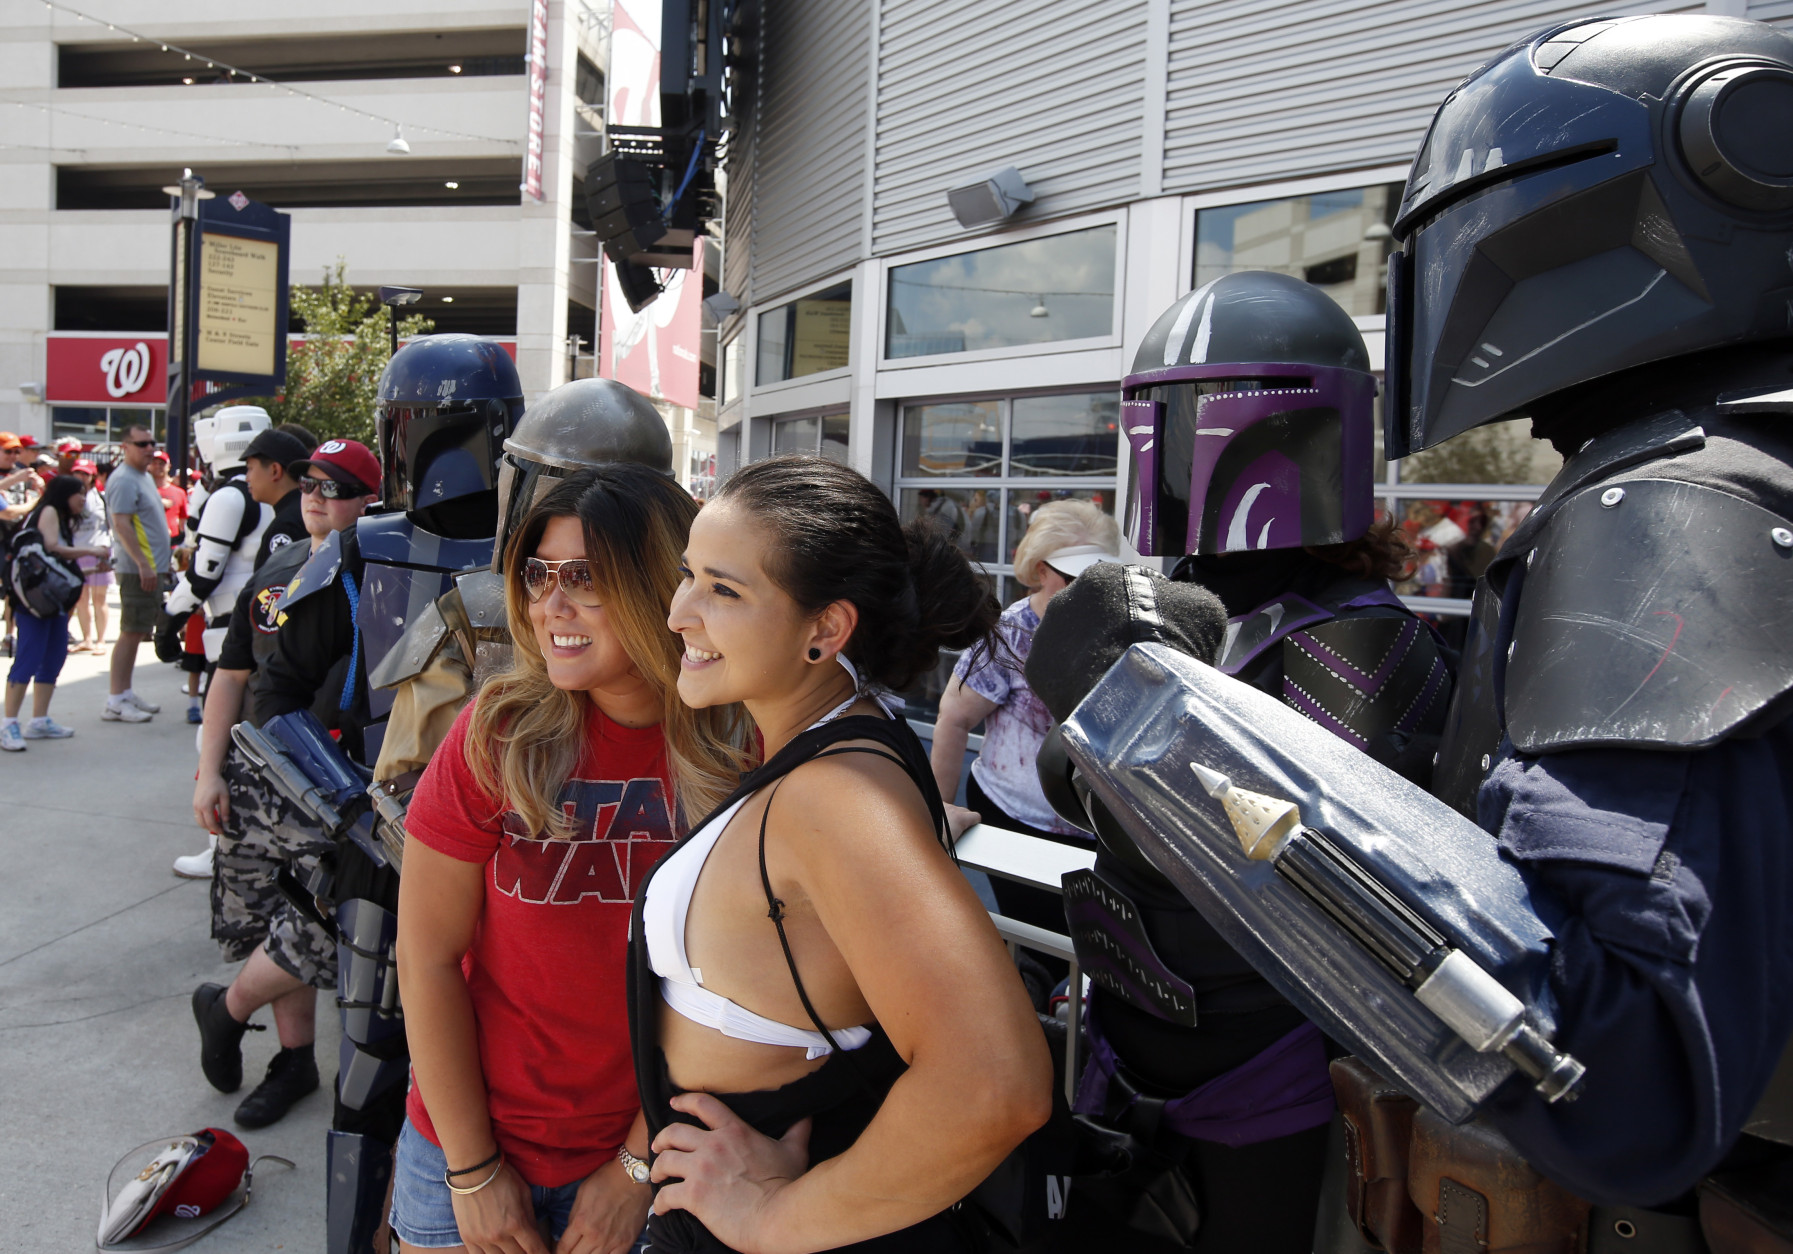 Fans pose with Star Wars characters on Star Wars day before a baseball game between the Washington Nationals and the Los Angeles Dodgers at Nationals Park, Sunday, July 19, 2015, in Washington. (AP Photo/Alex Brandon)